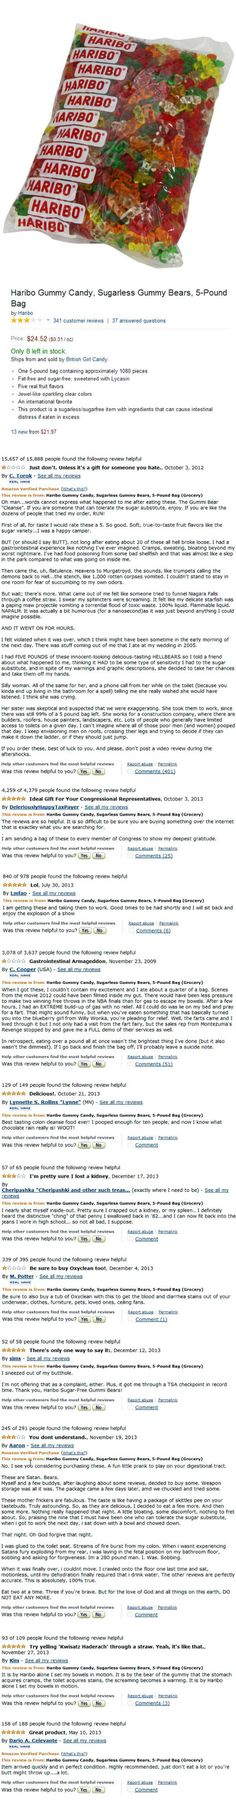 i was actually doubled over in laughter at the reviews, and dont stop after the first one